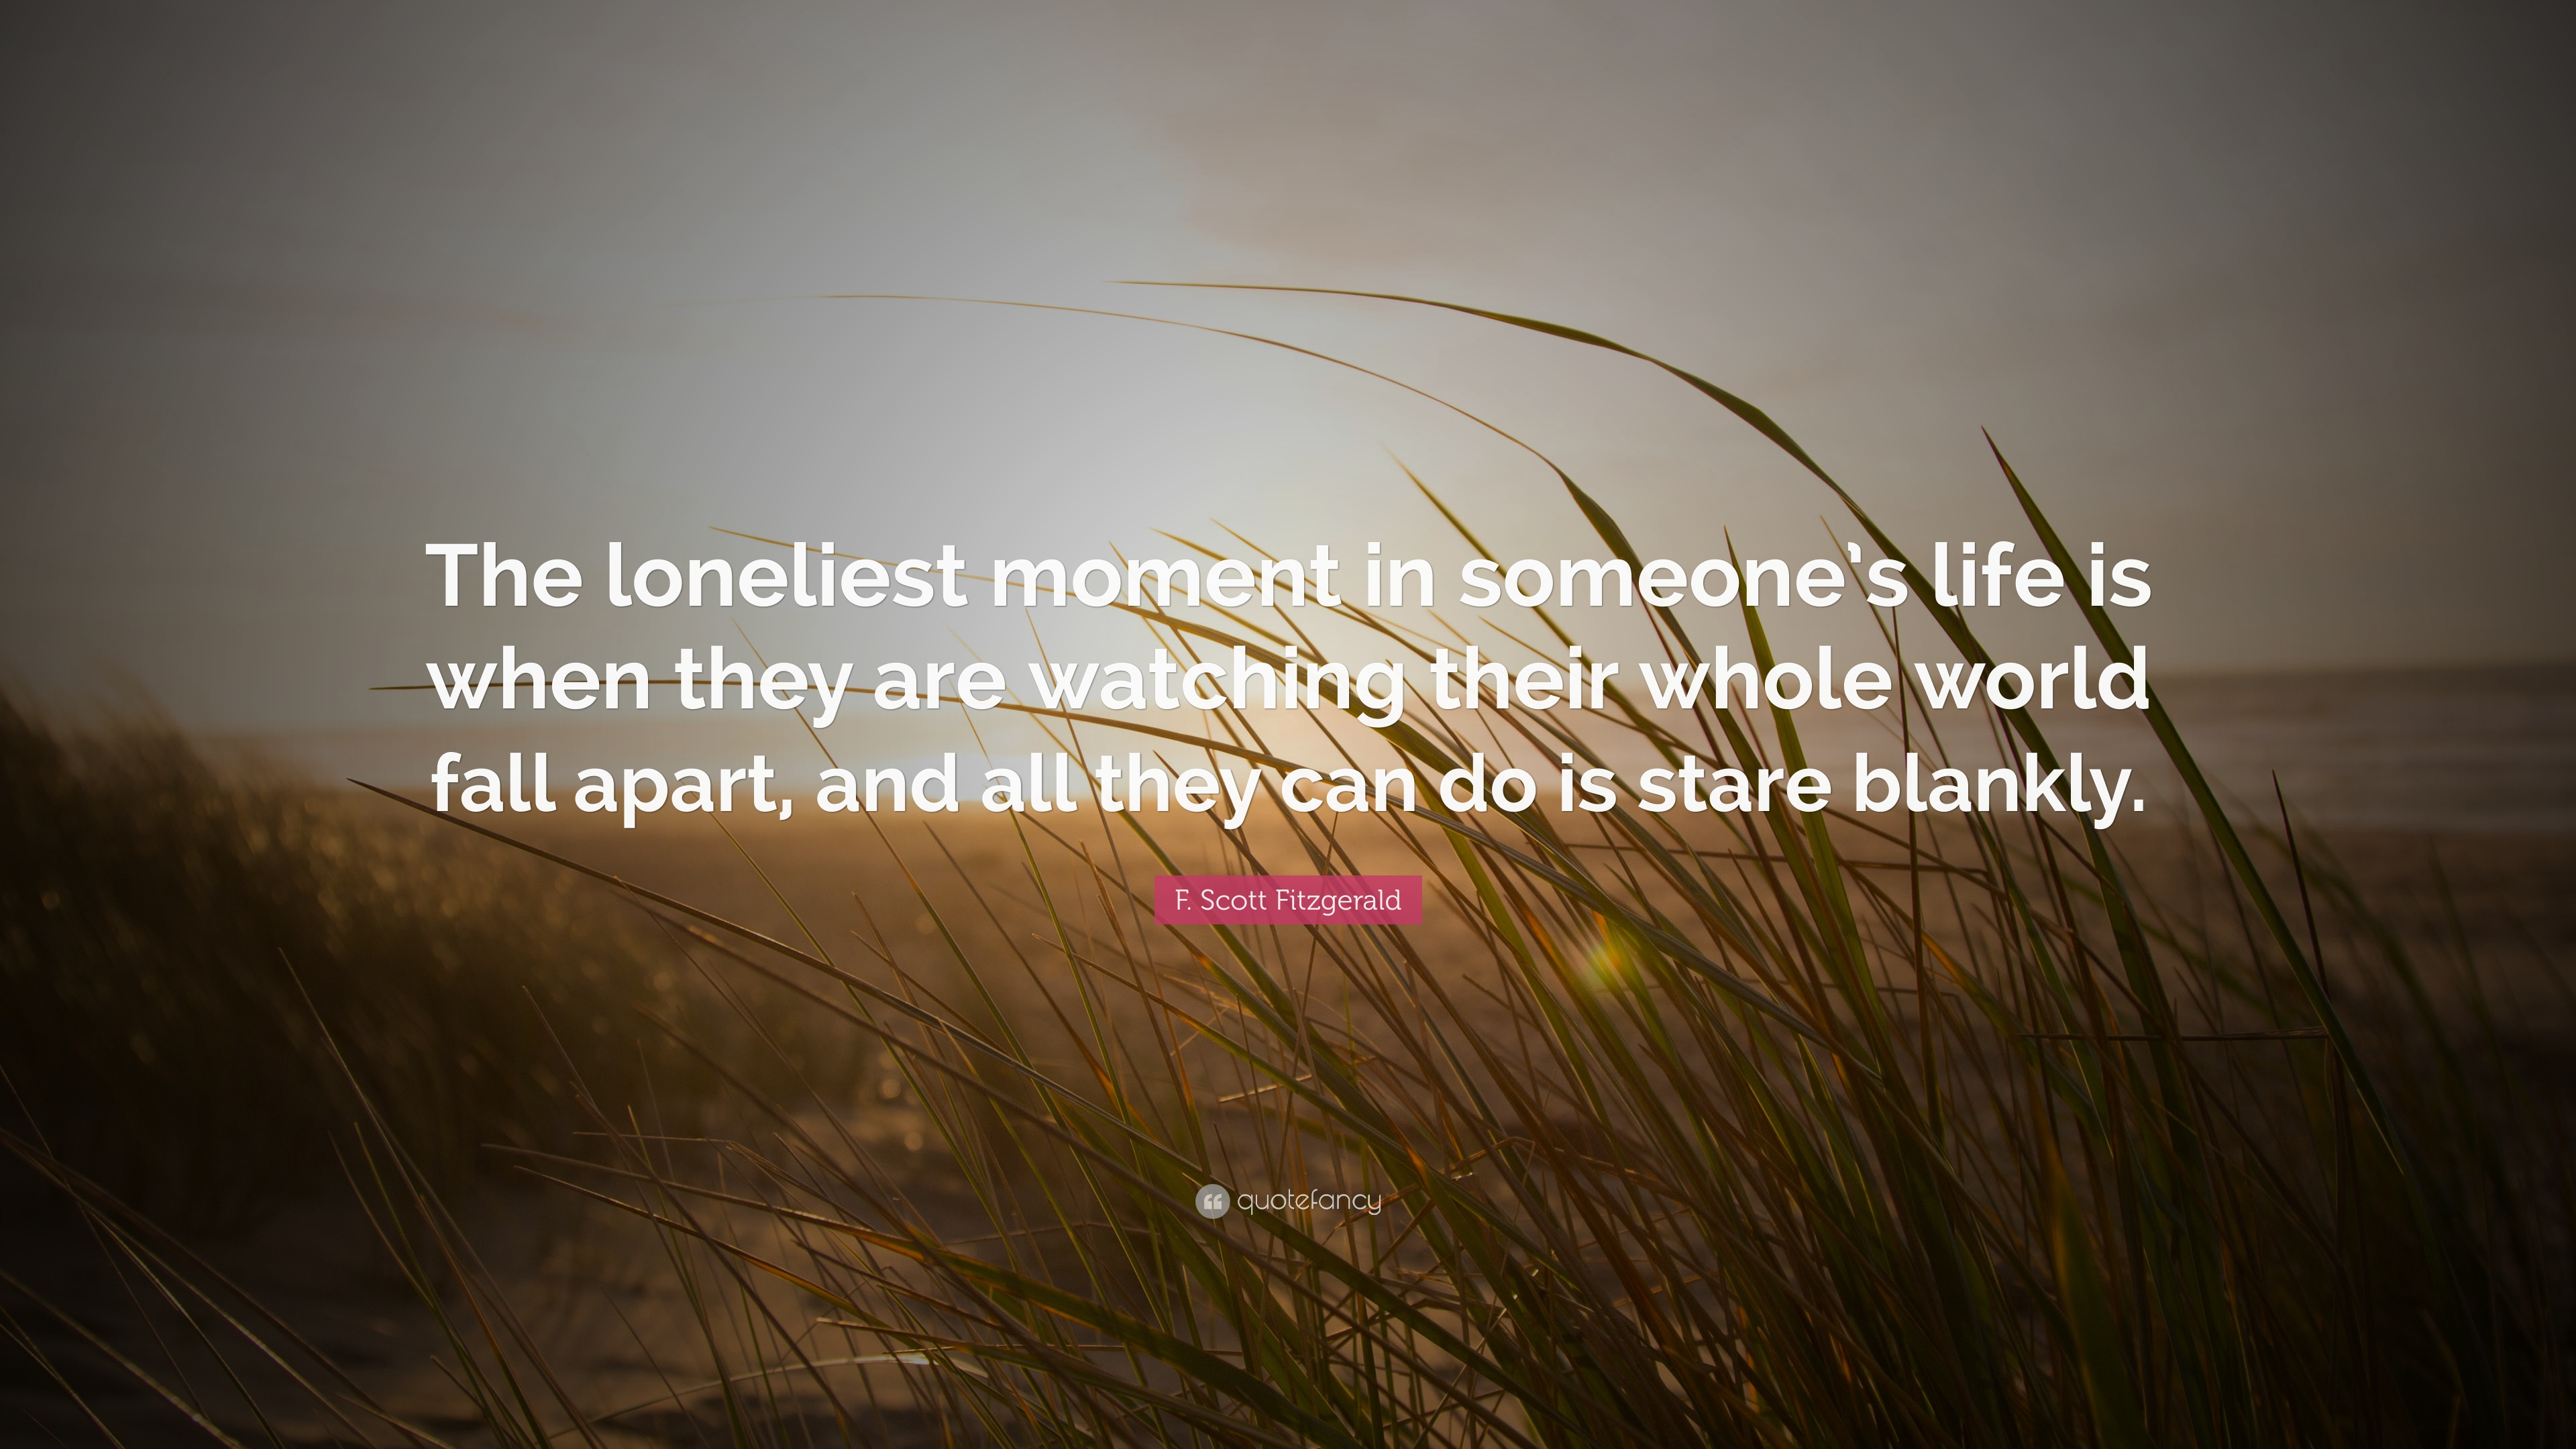 F Scott Fitzgerald Quote The Loneliest Moment In Someones Life